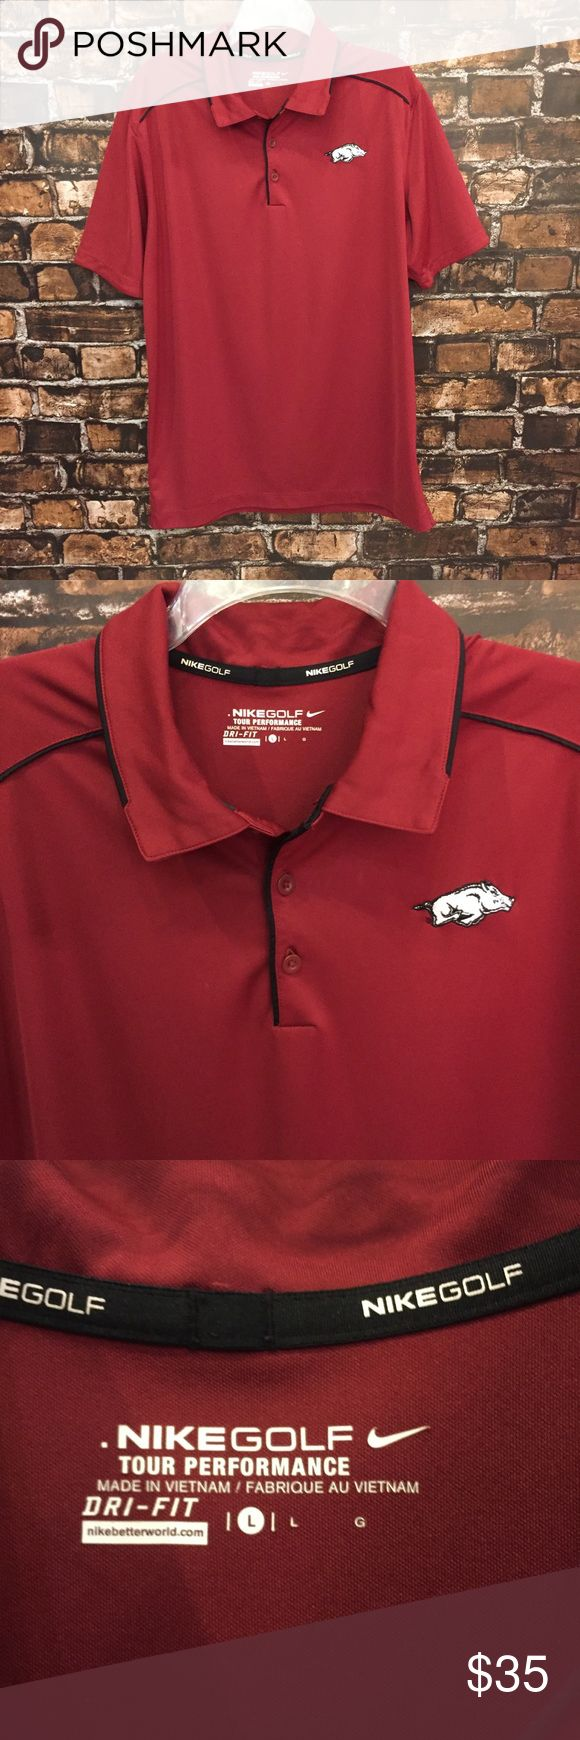 Men's Nike Golf Razorback Polo! Sz Large. ❤️🐗🏌🏽 This is the perfect Dri-Fit Polo for golf or tailgating! Show your Hog Pride with this comfy shirt. In like new condition!! **super small spot close to the buttons. Pictured above.** (MT22) Nike Shirts Polos